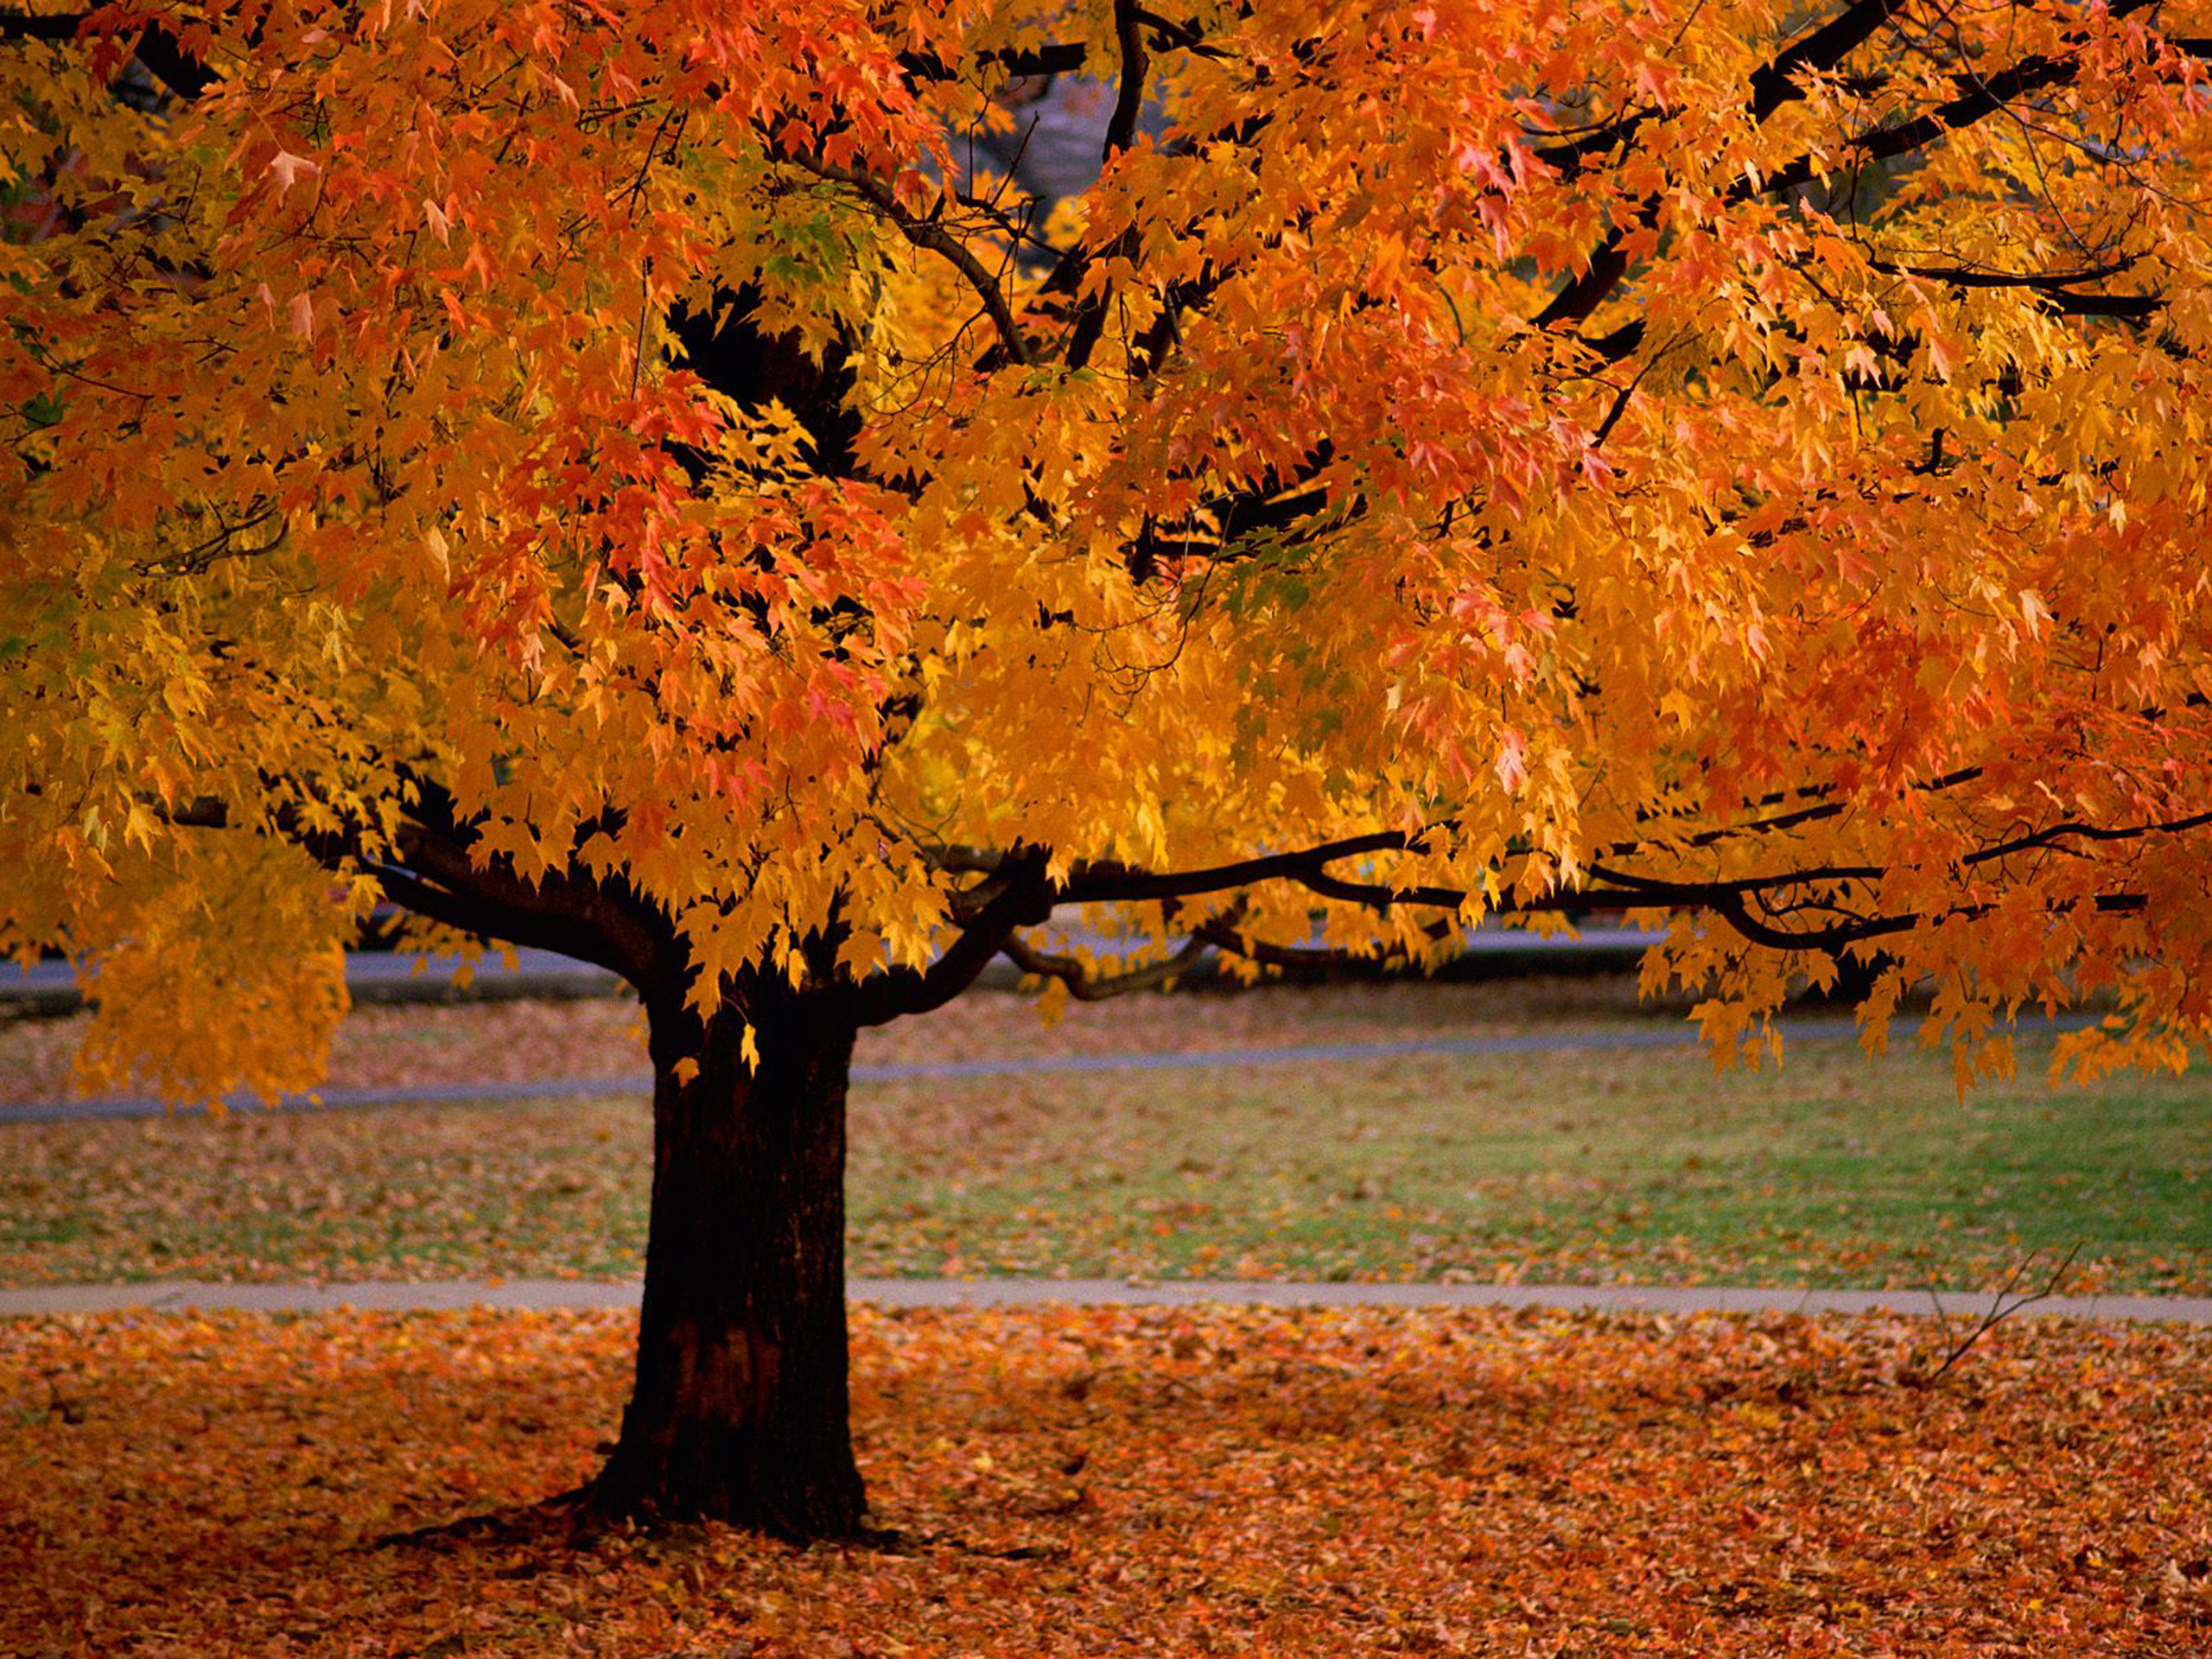 Reasons Why Autumn Is the Best Season